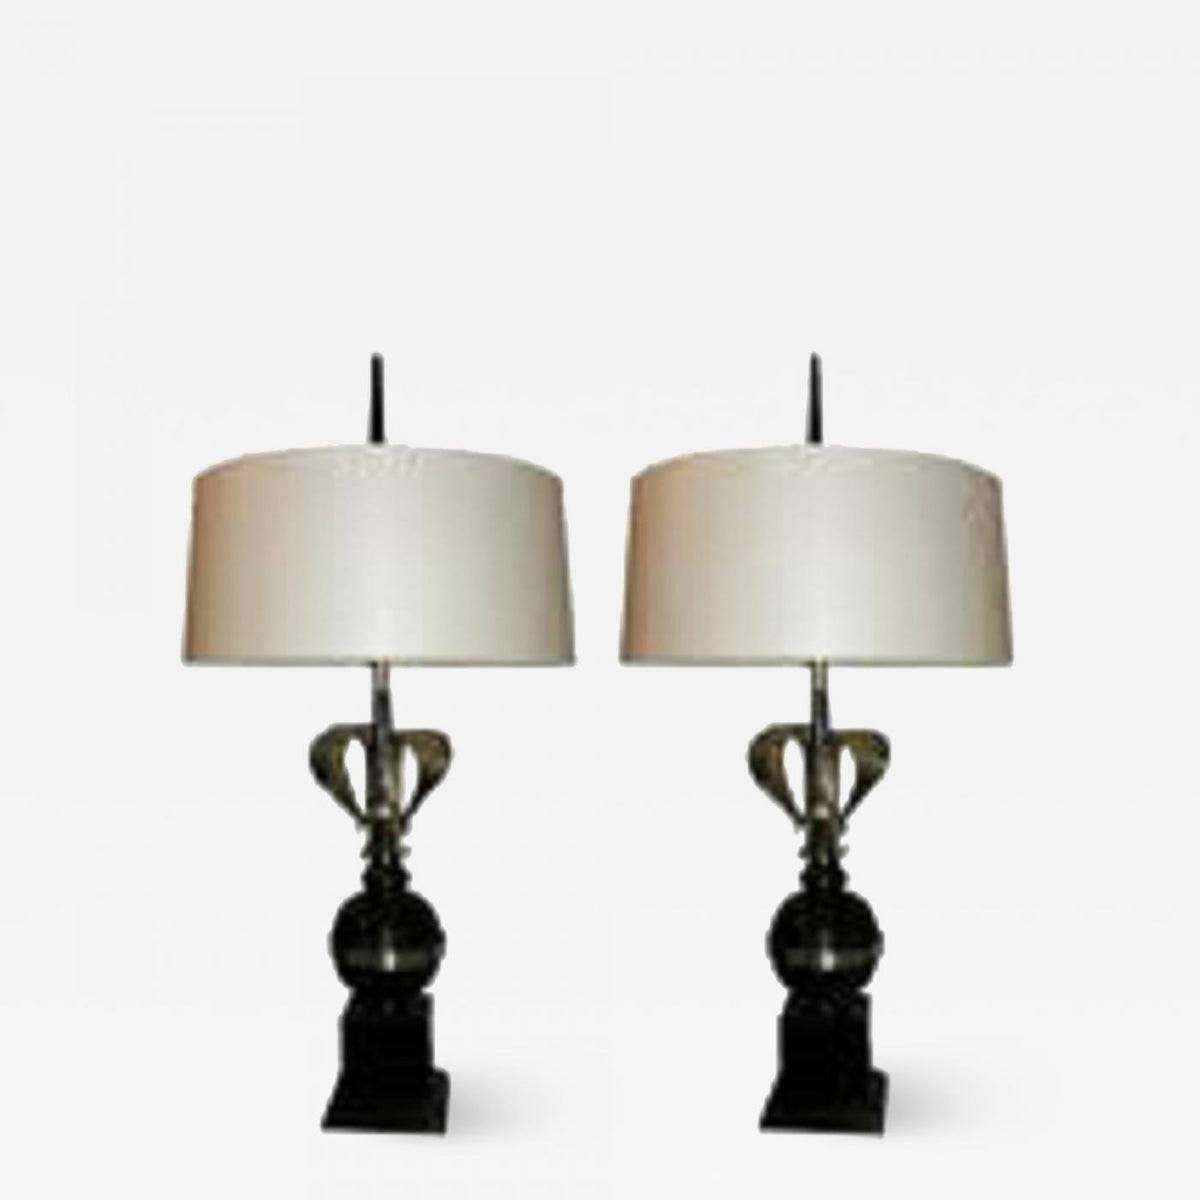 Pair of French Art Moderne Table Lamps